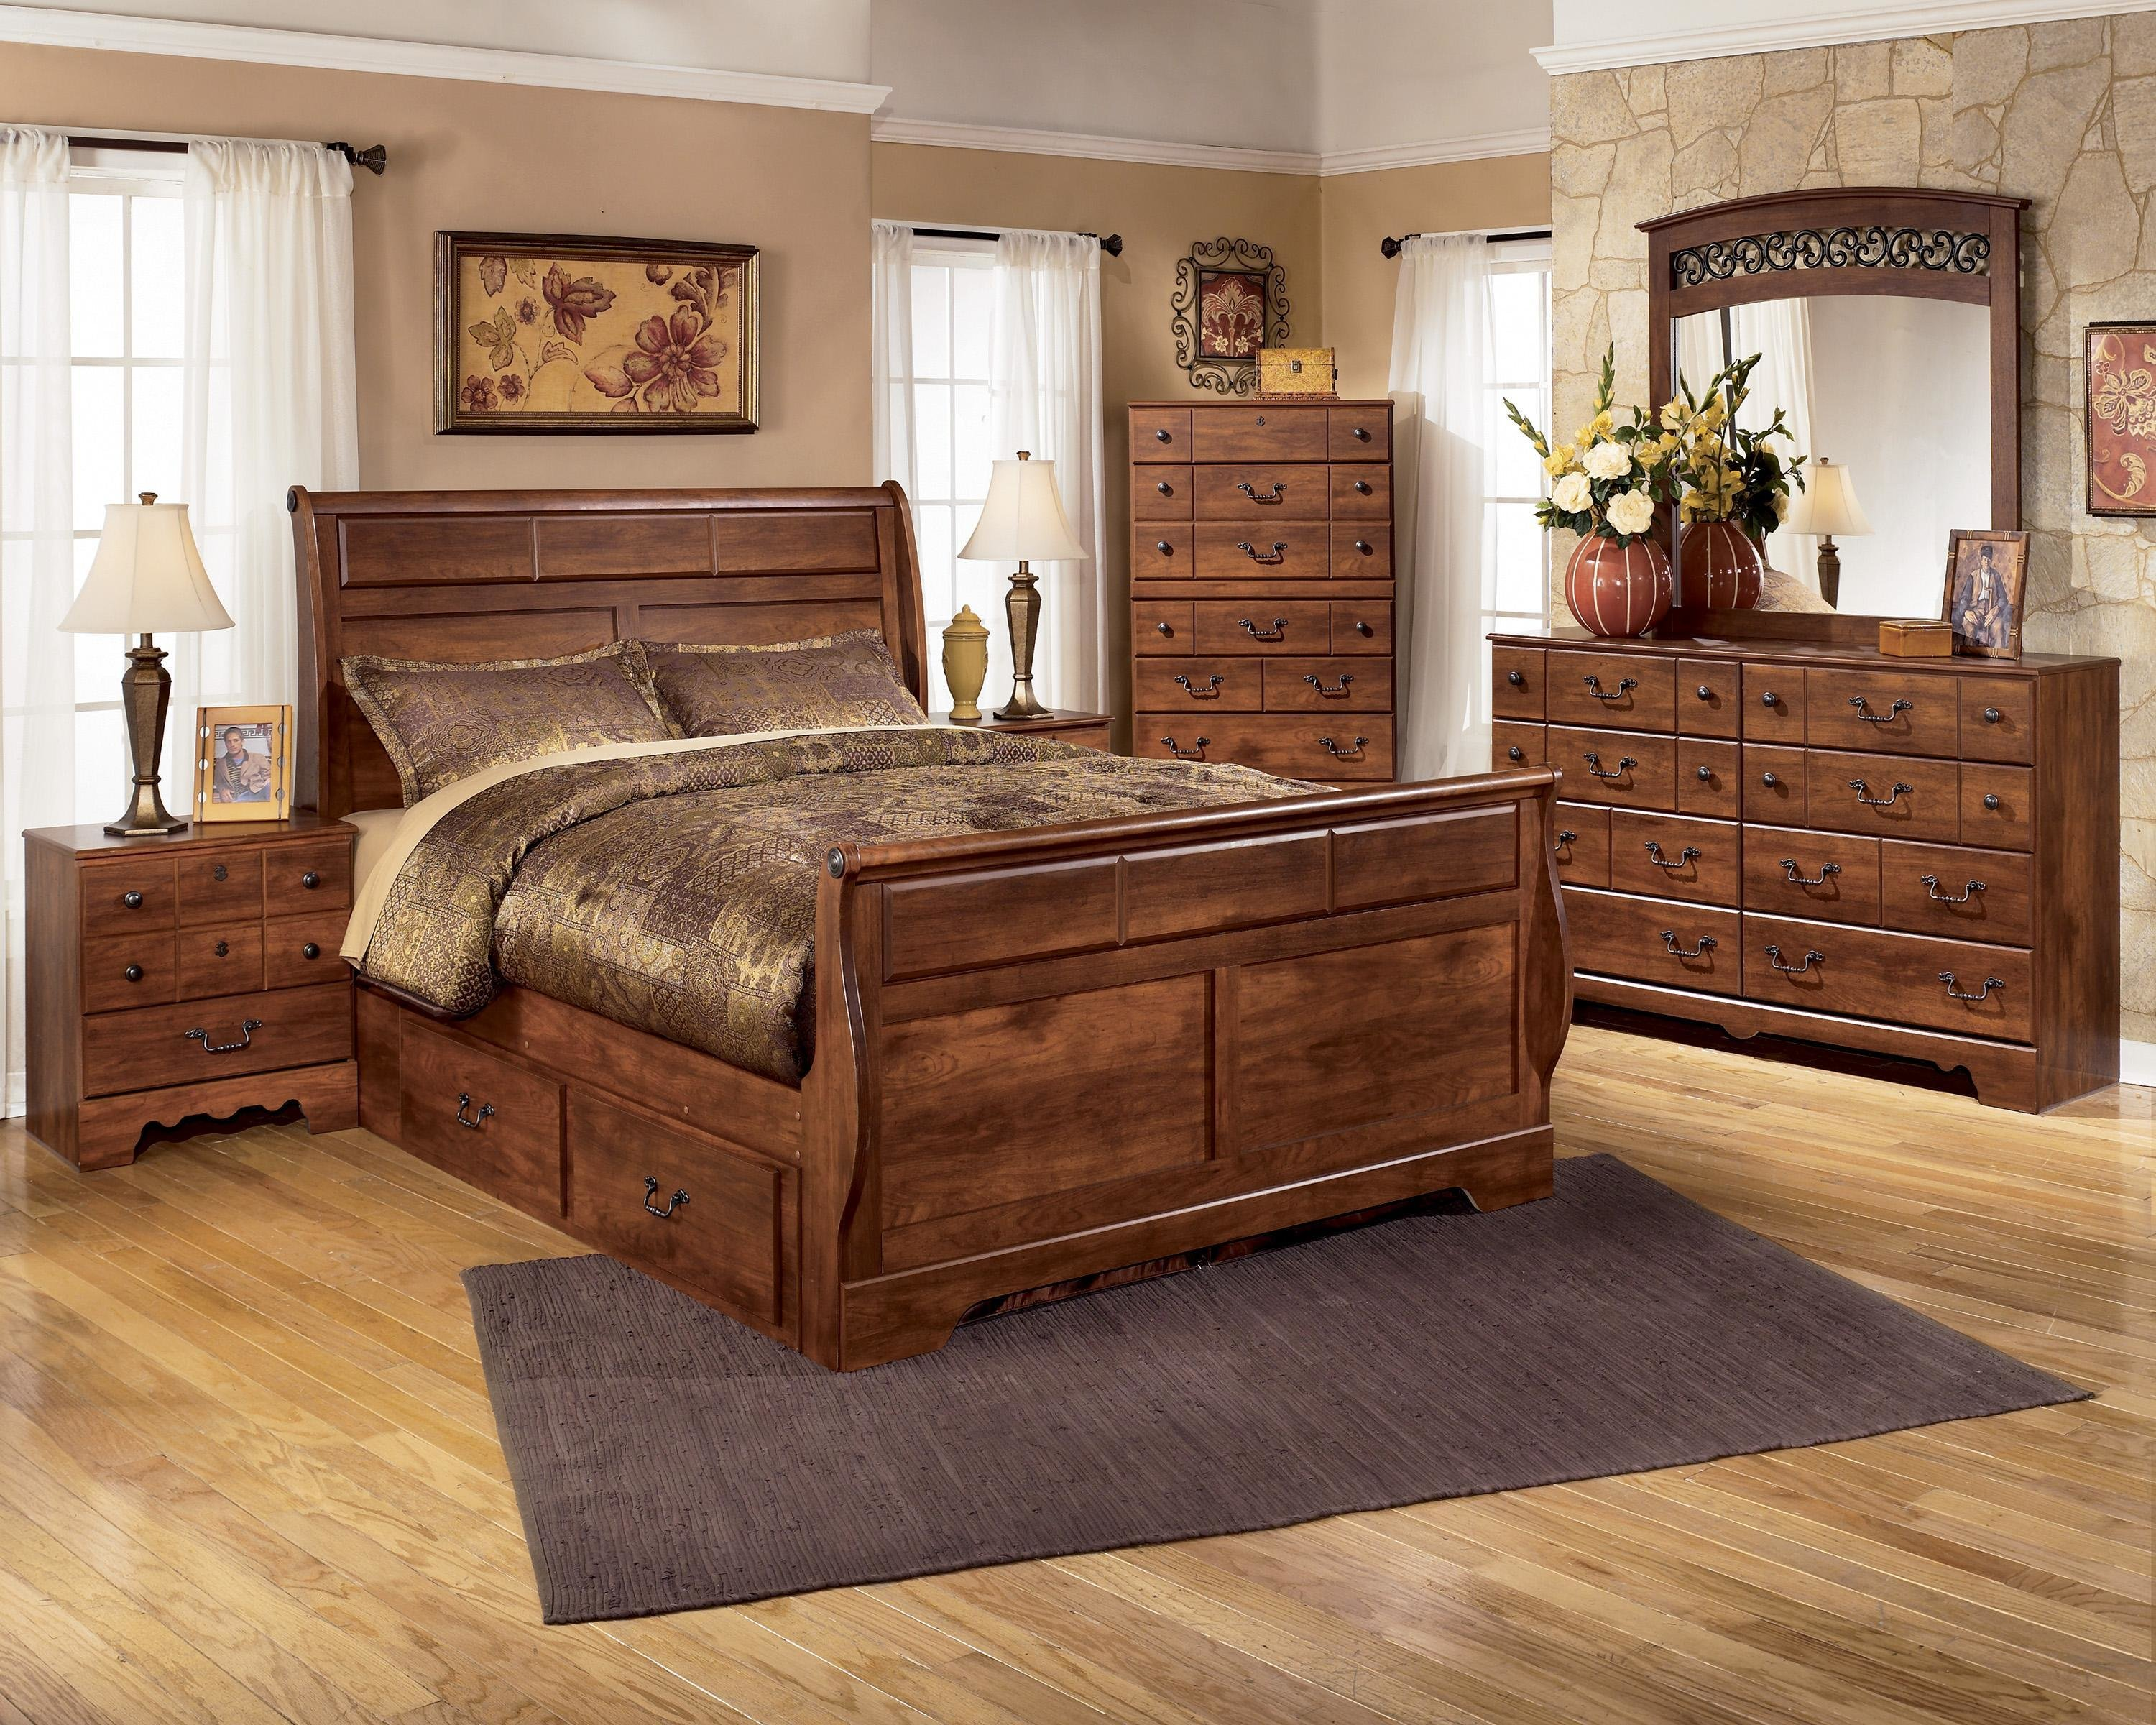 Best Signature Design By Ashley Timberline Queen Bedroom Group With Pictures